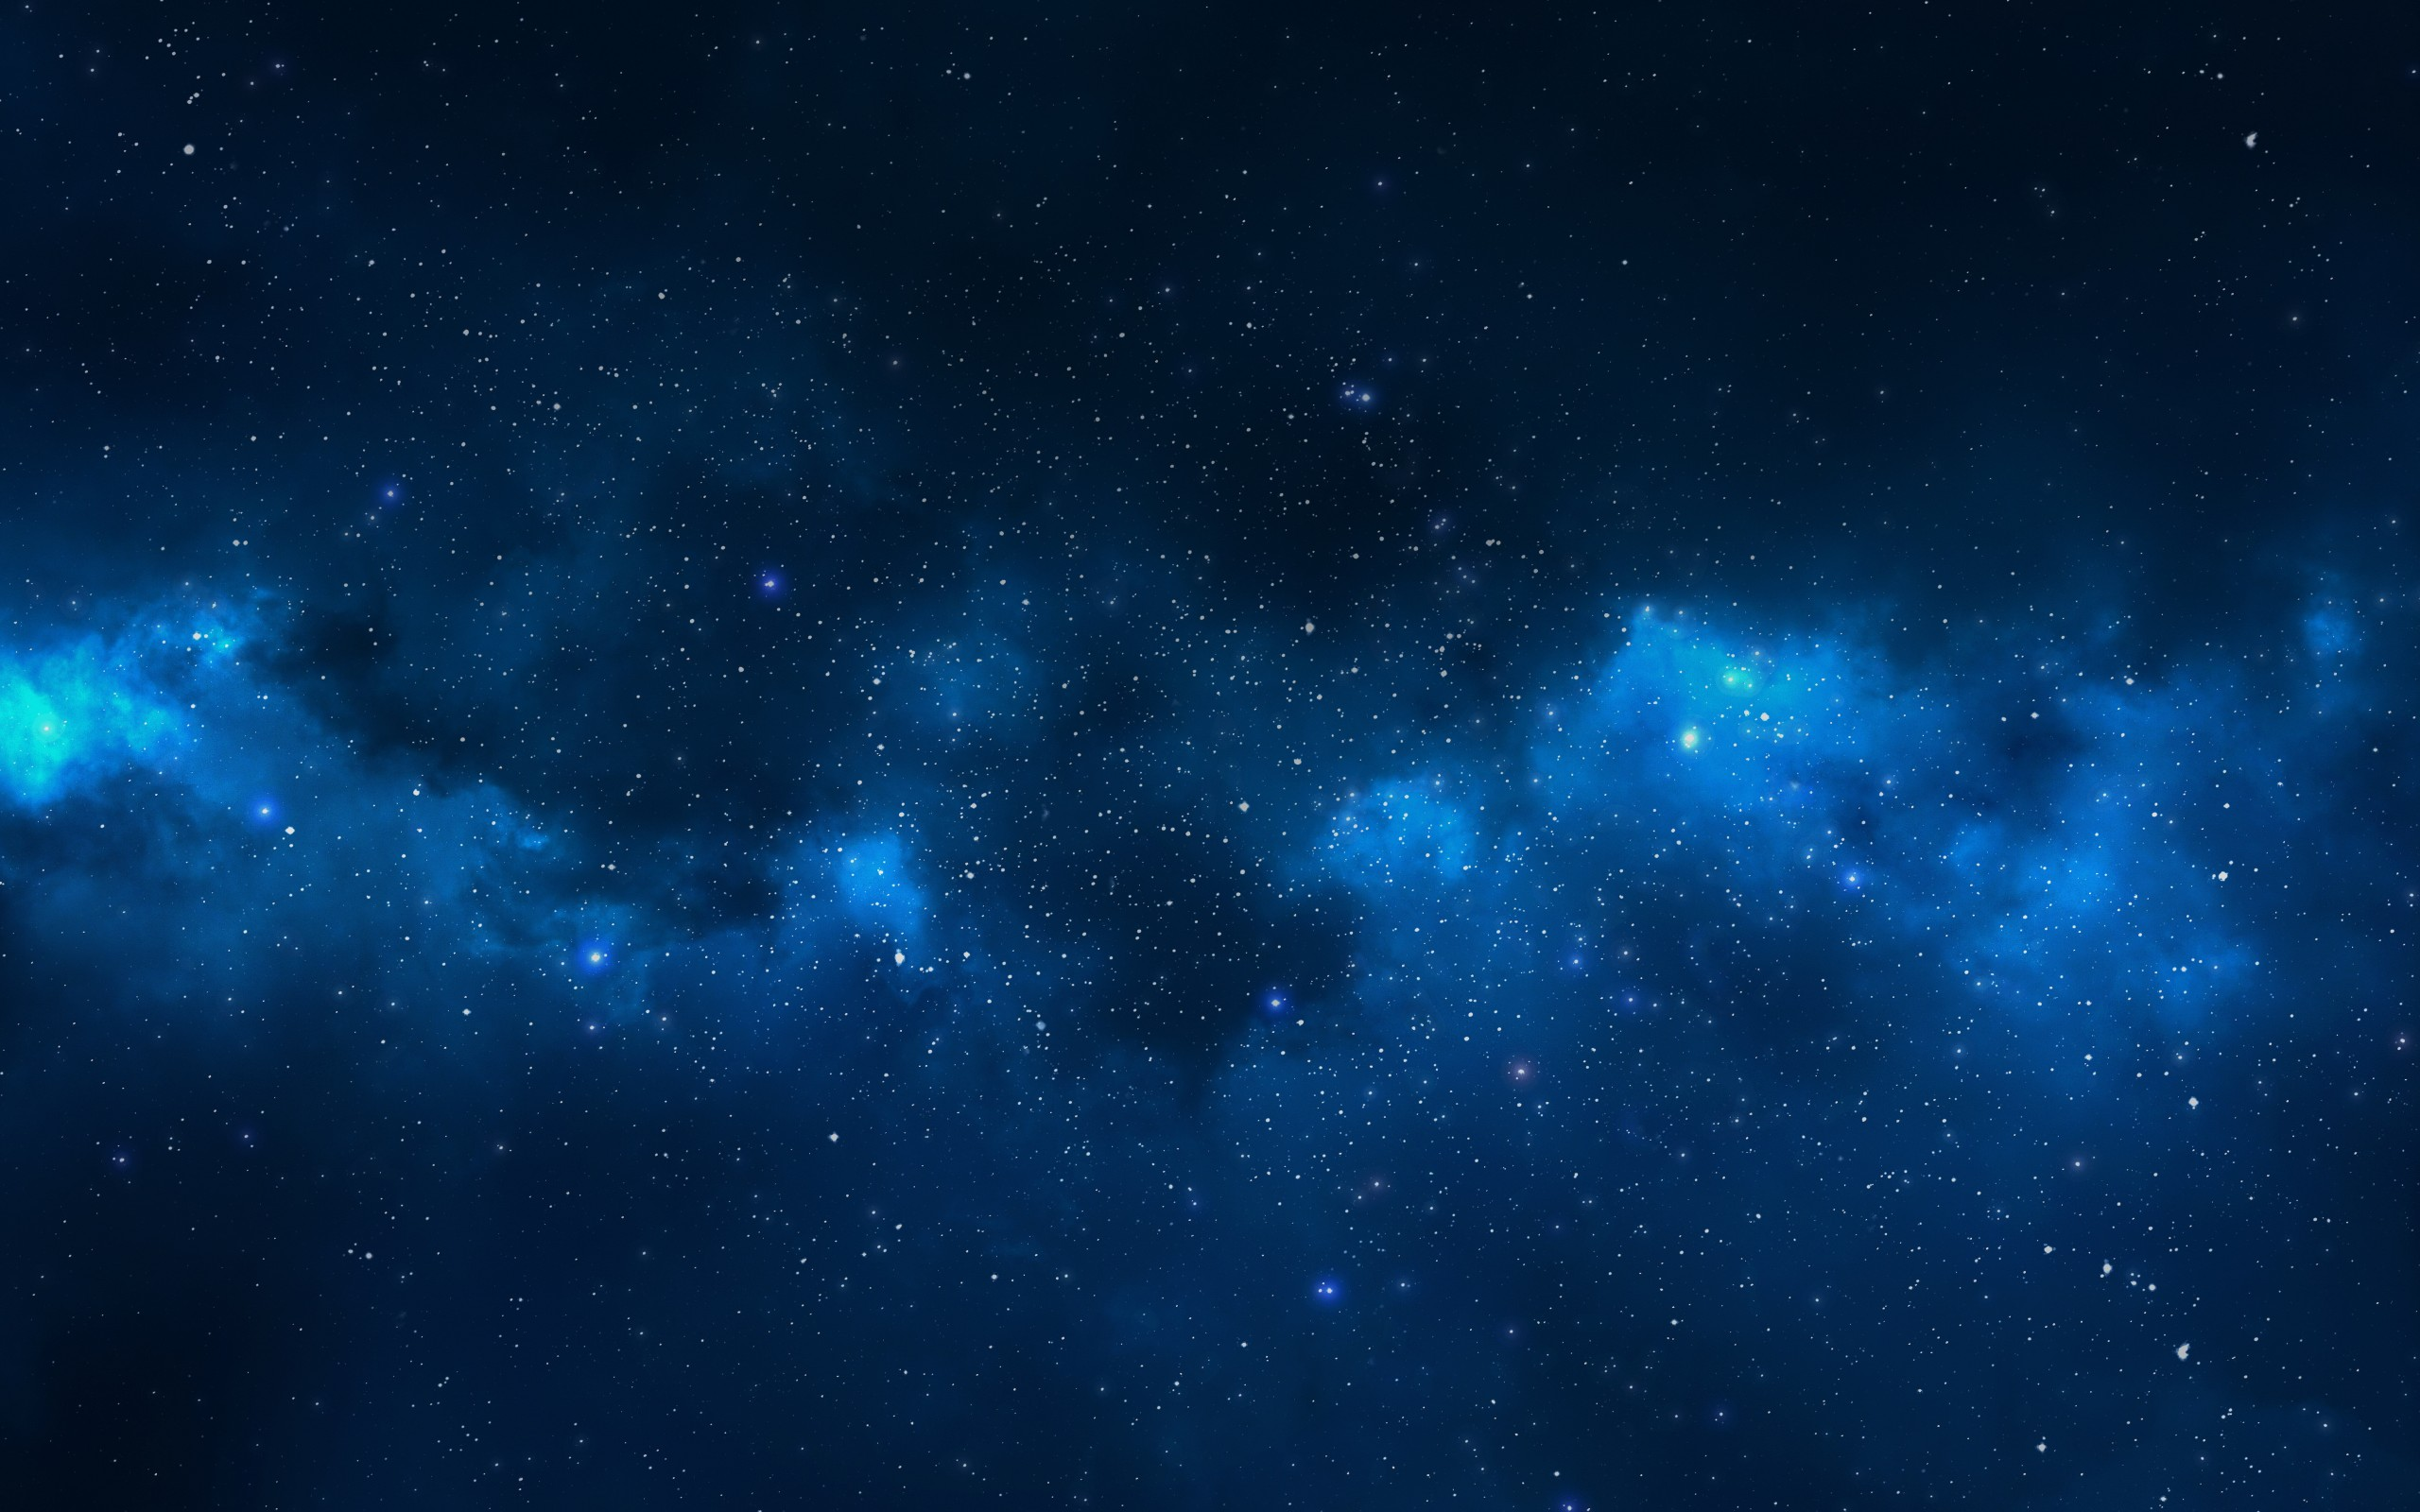 Milky Way stars nebula space universe wallpaper